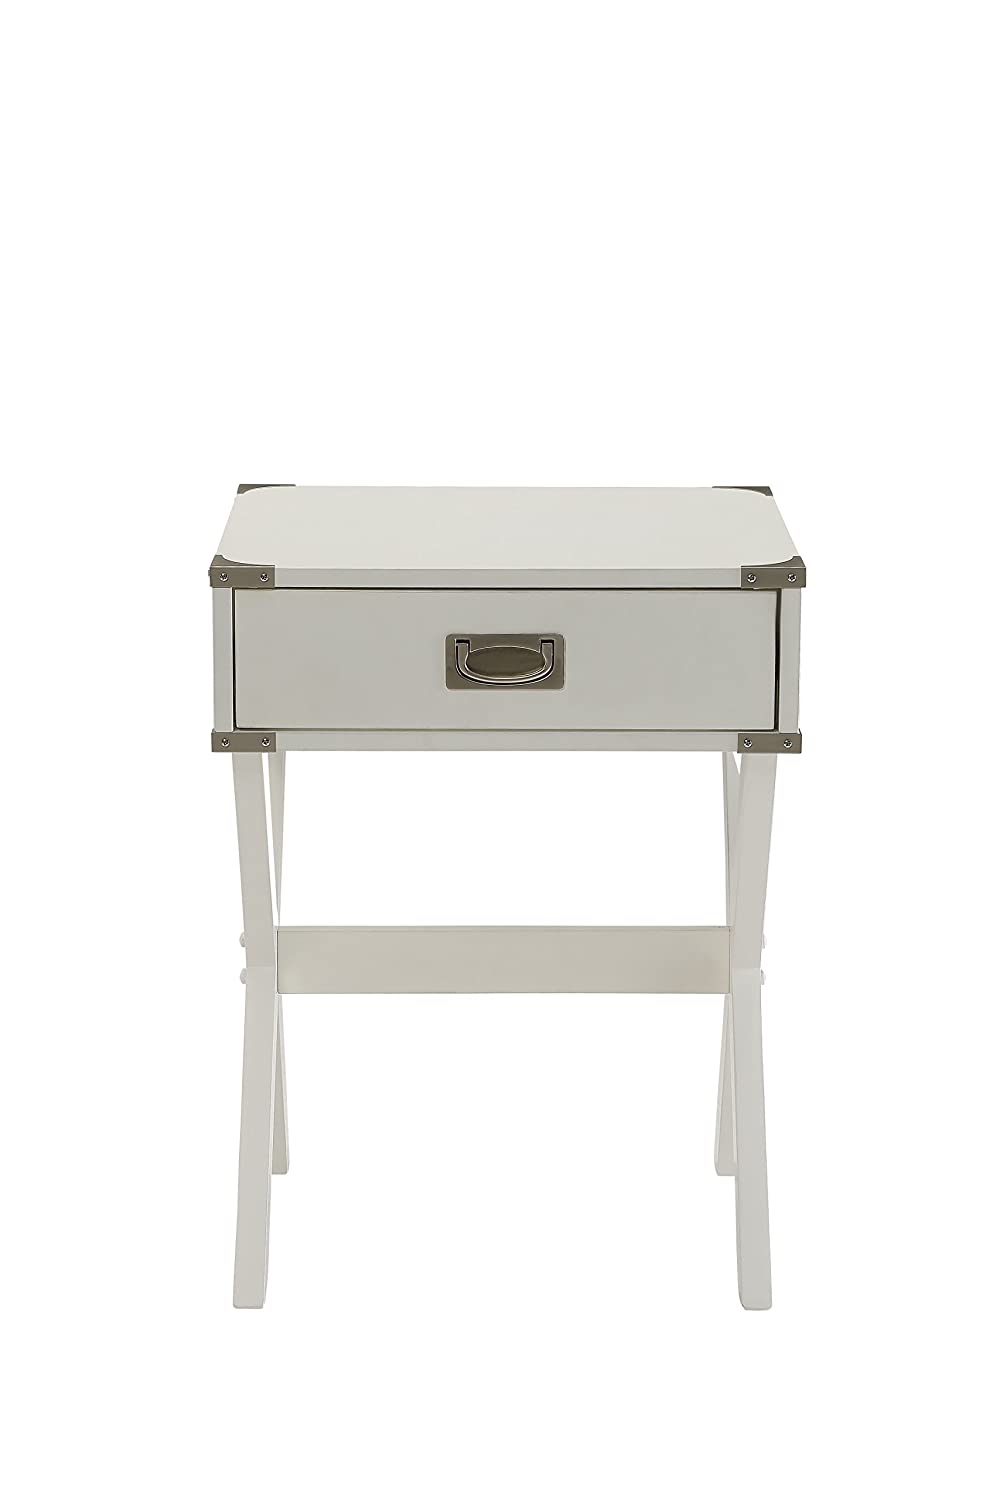 amazoncom acme furniture acme  babs end table white one  - amazoncom acme furniture acme  babs end table white one sizekitchen  dining